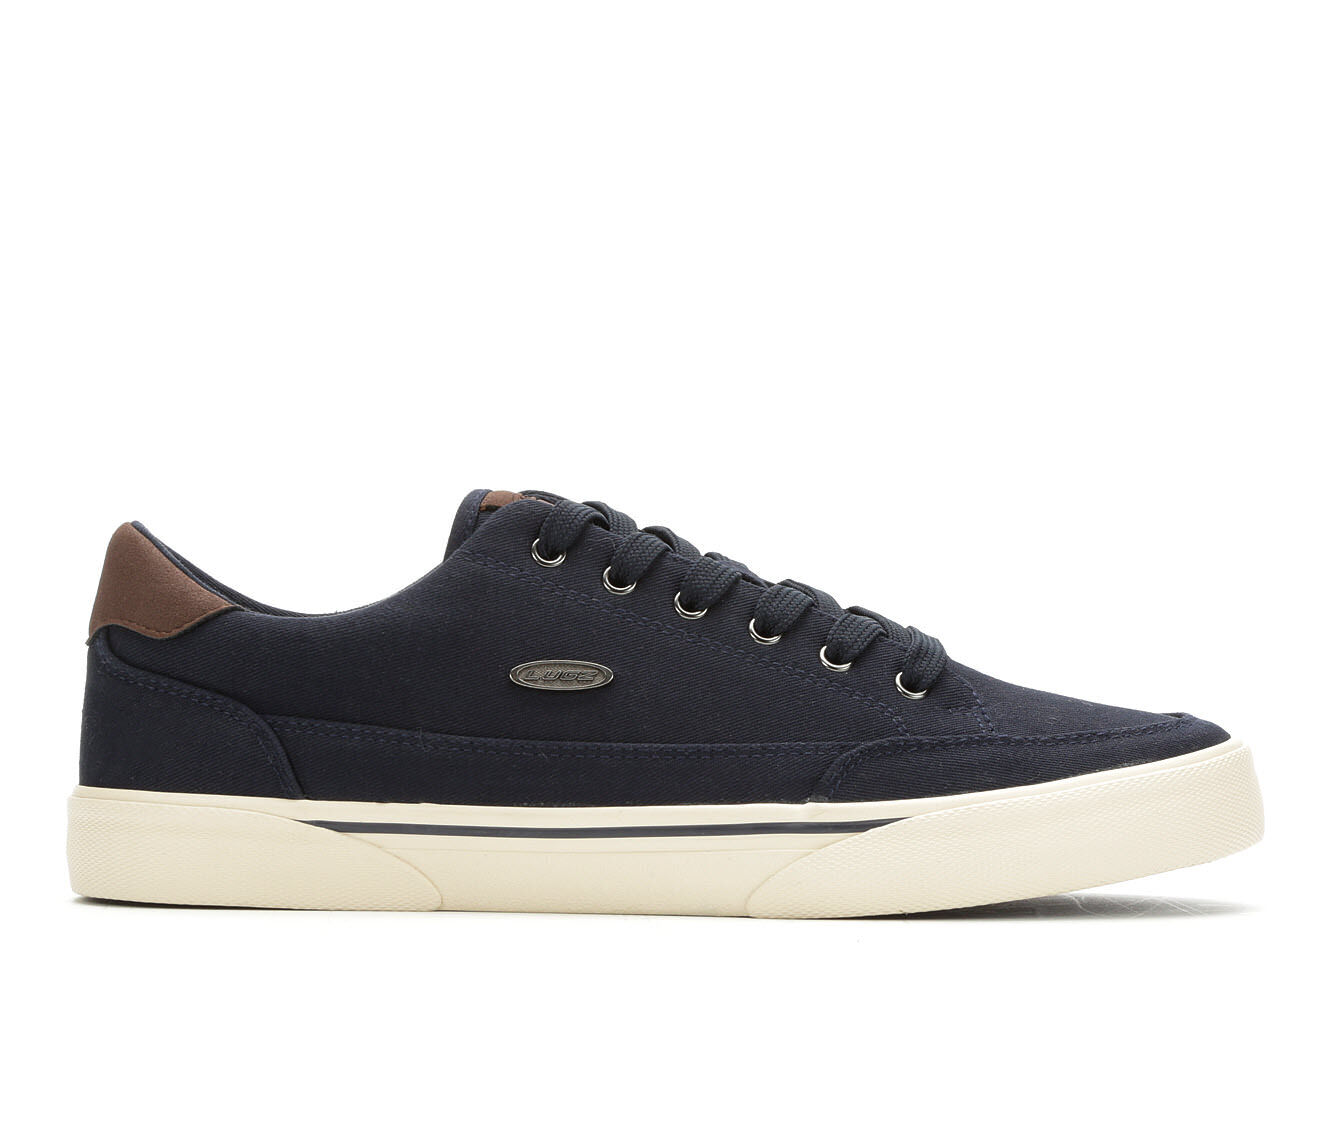 competitive price Men's Lugz Stockwell Casual Sneakers Navy/Chocolate